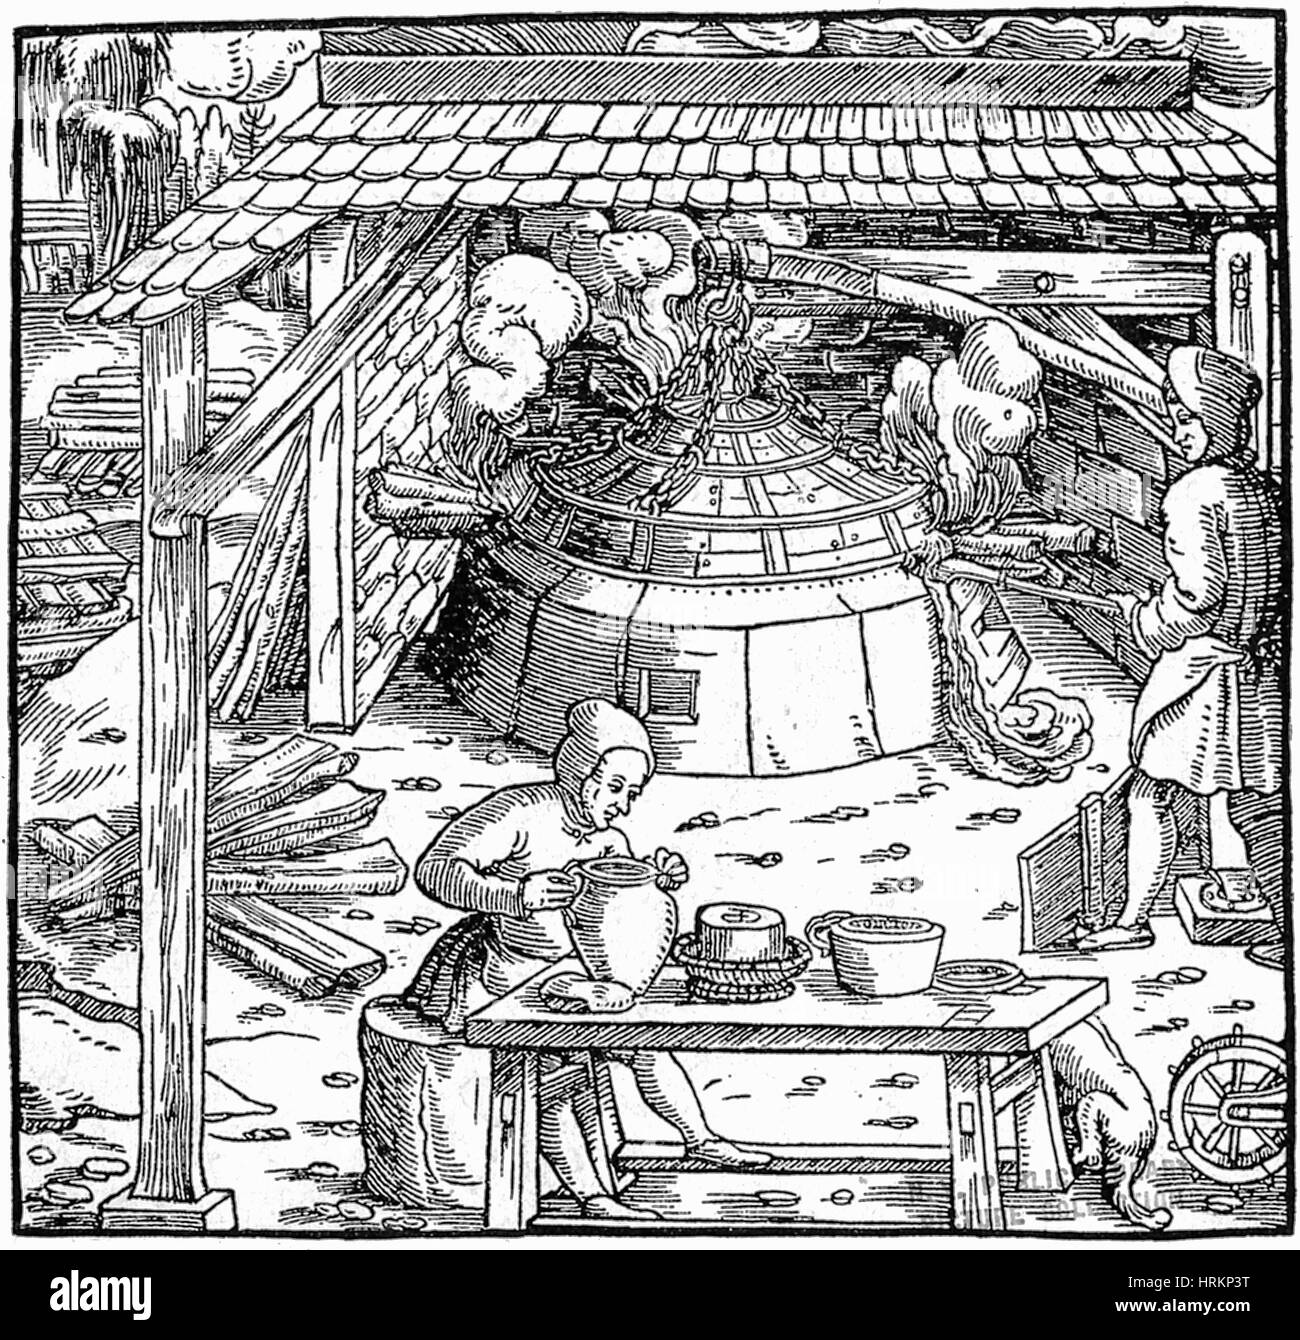 16th Century Silver Mining - Stock Image